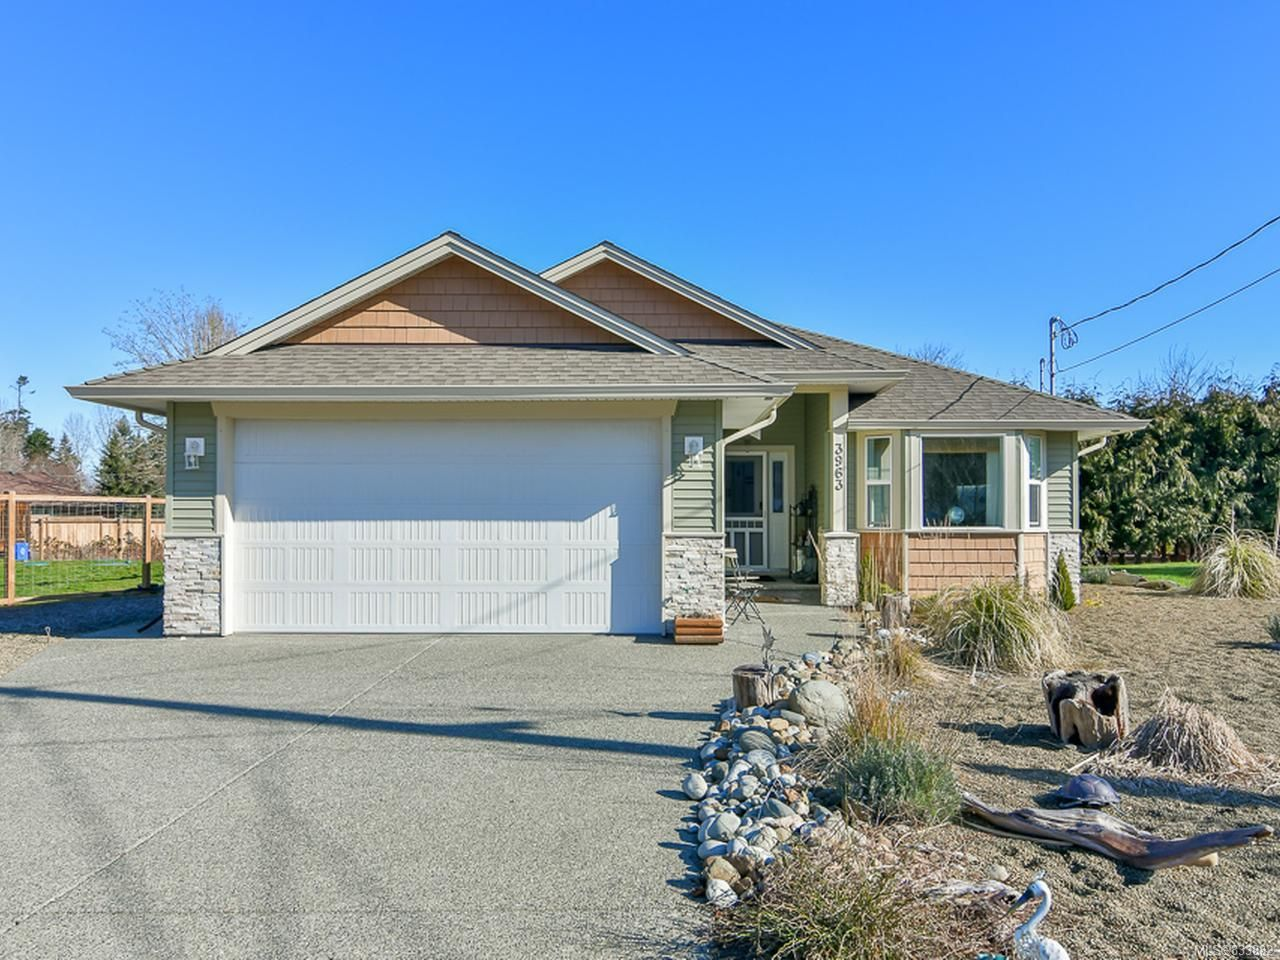 Main Photo: 3963 Thirsk Rd in CAMPBELL RIVER: CR Campbell River South House for sale (Campbell River)  : MLS®# 833882